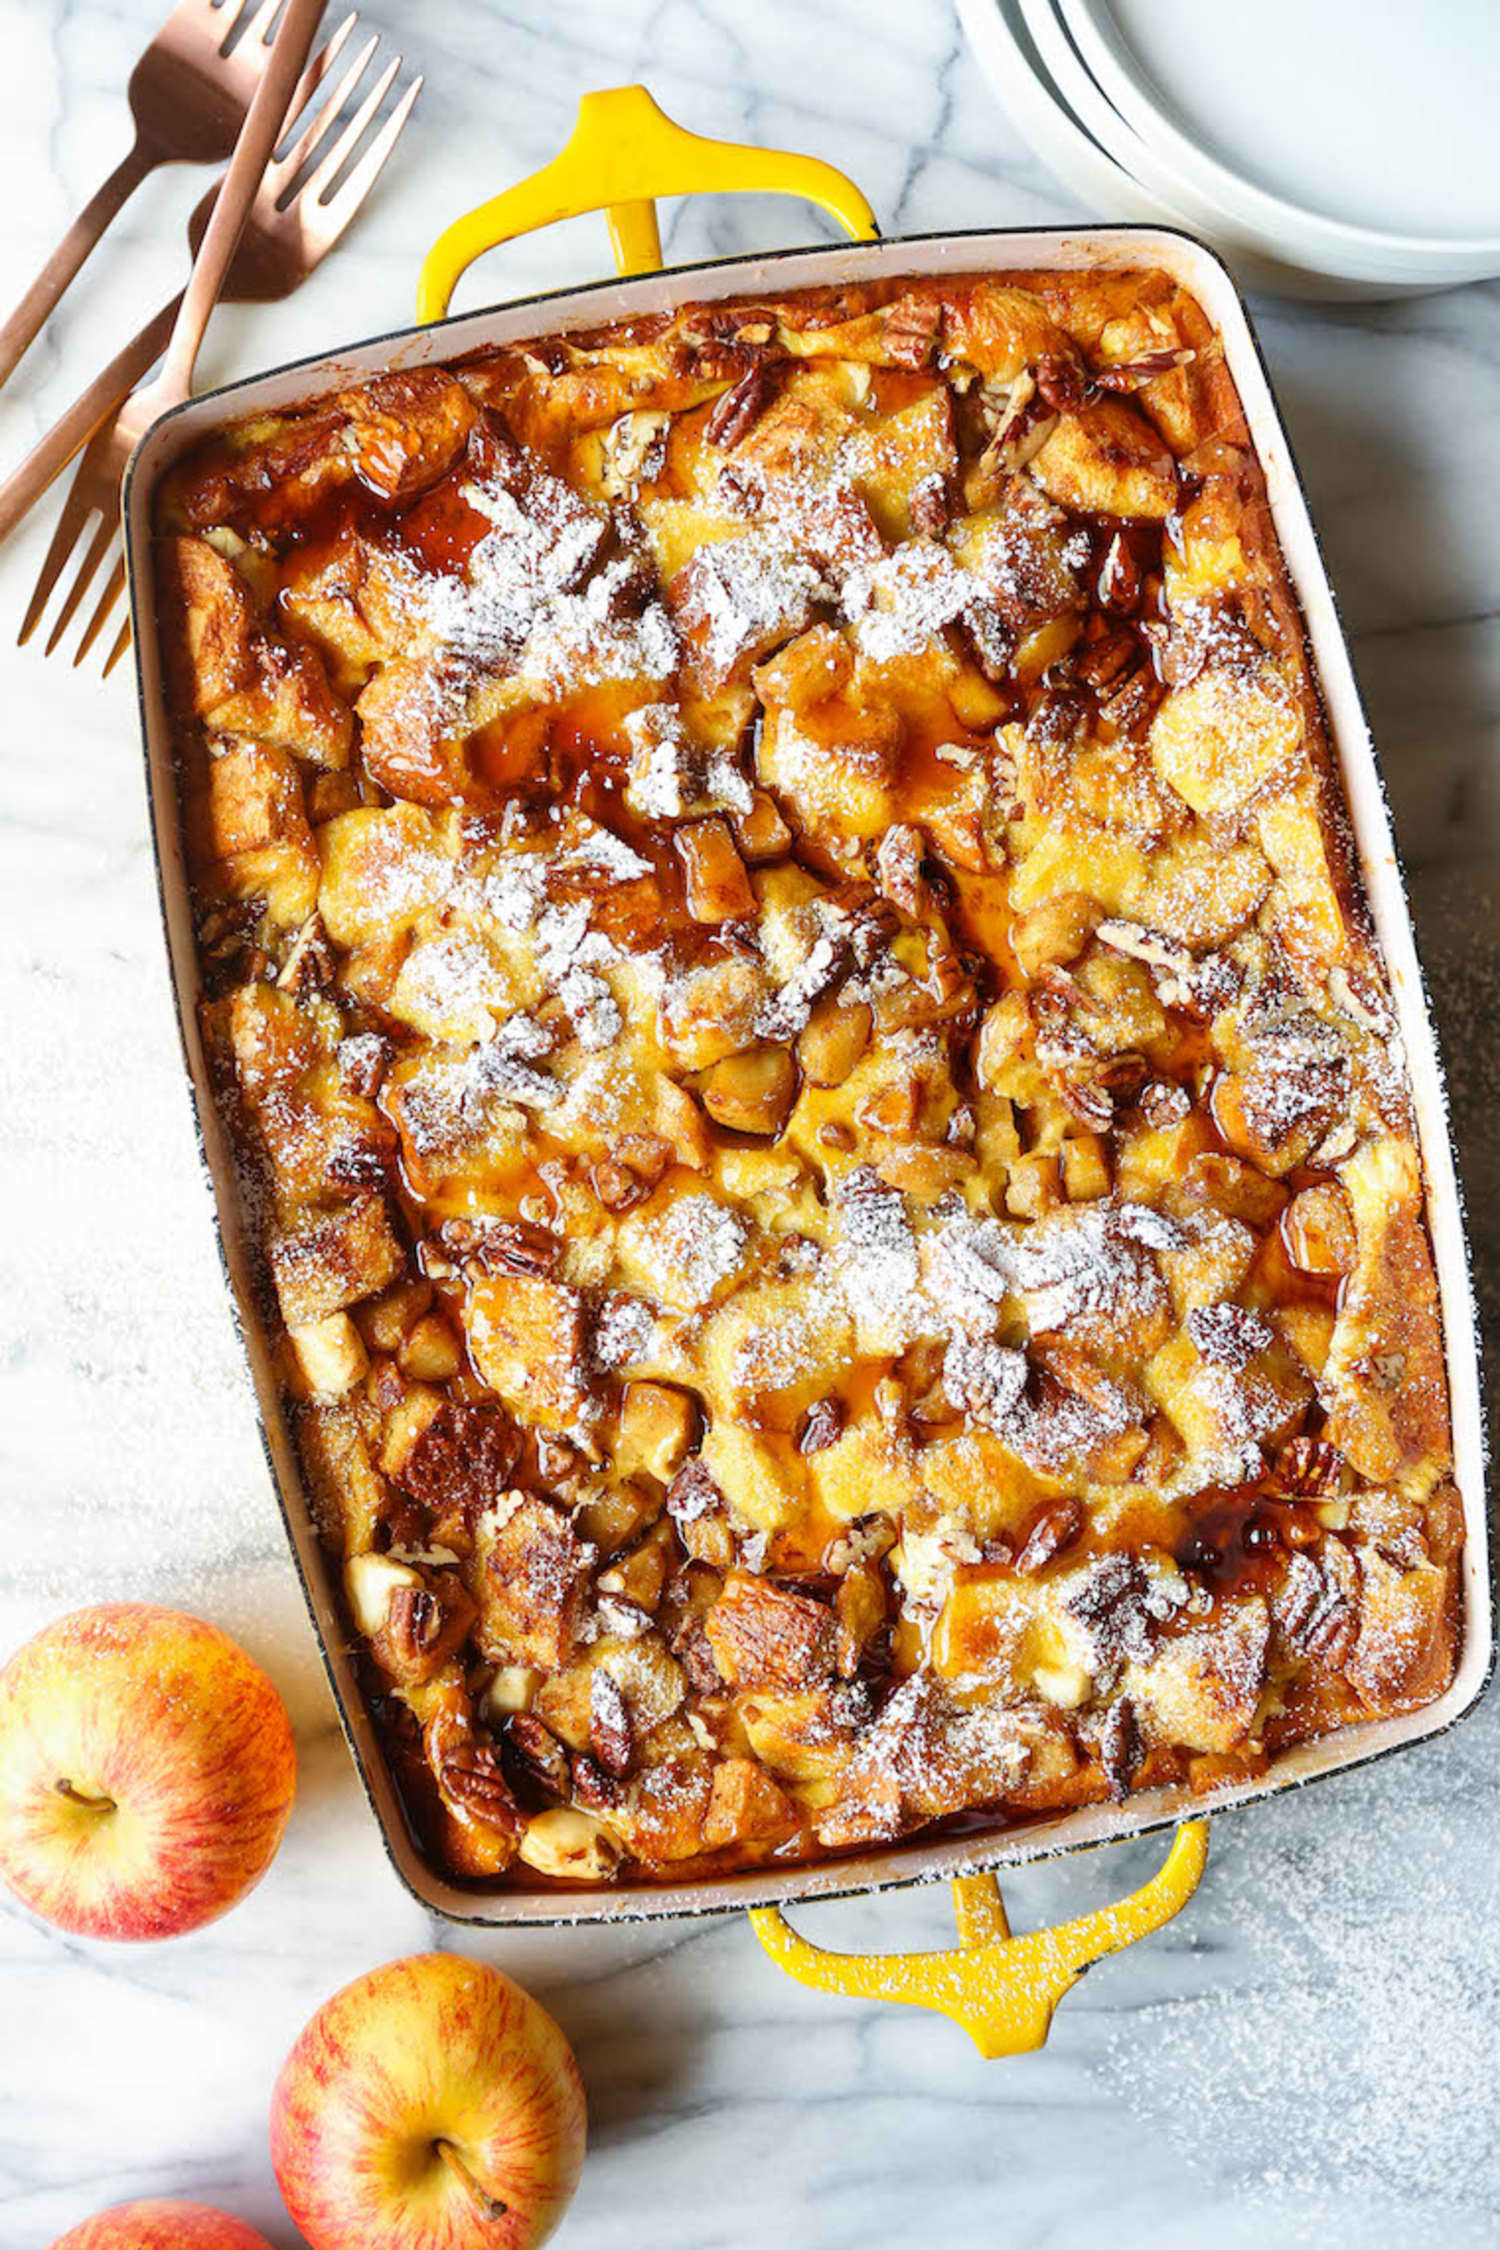 Prep This Cinnamon Apple French Toast the Night Before to Wake Up to a Spectacular Breakfast